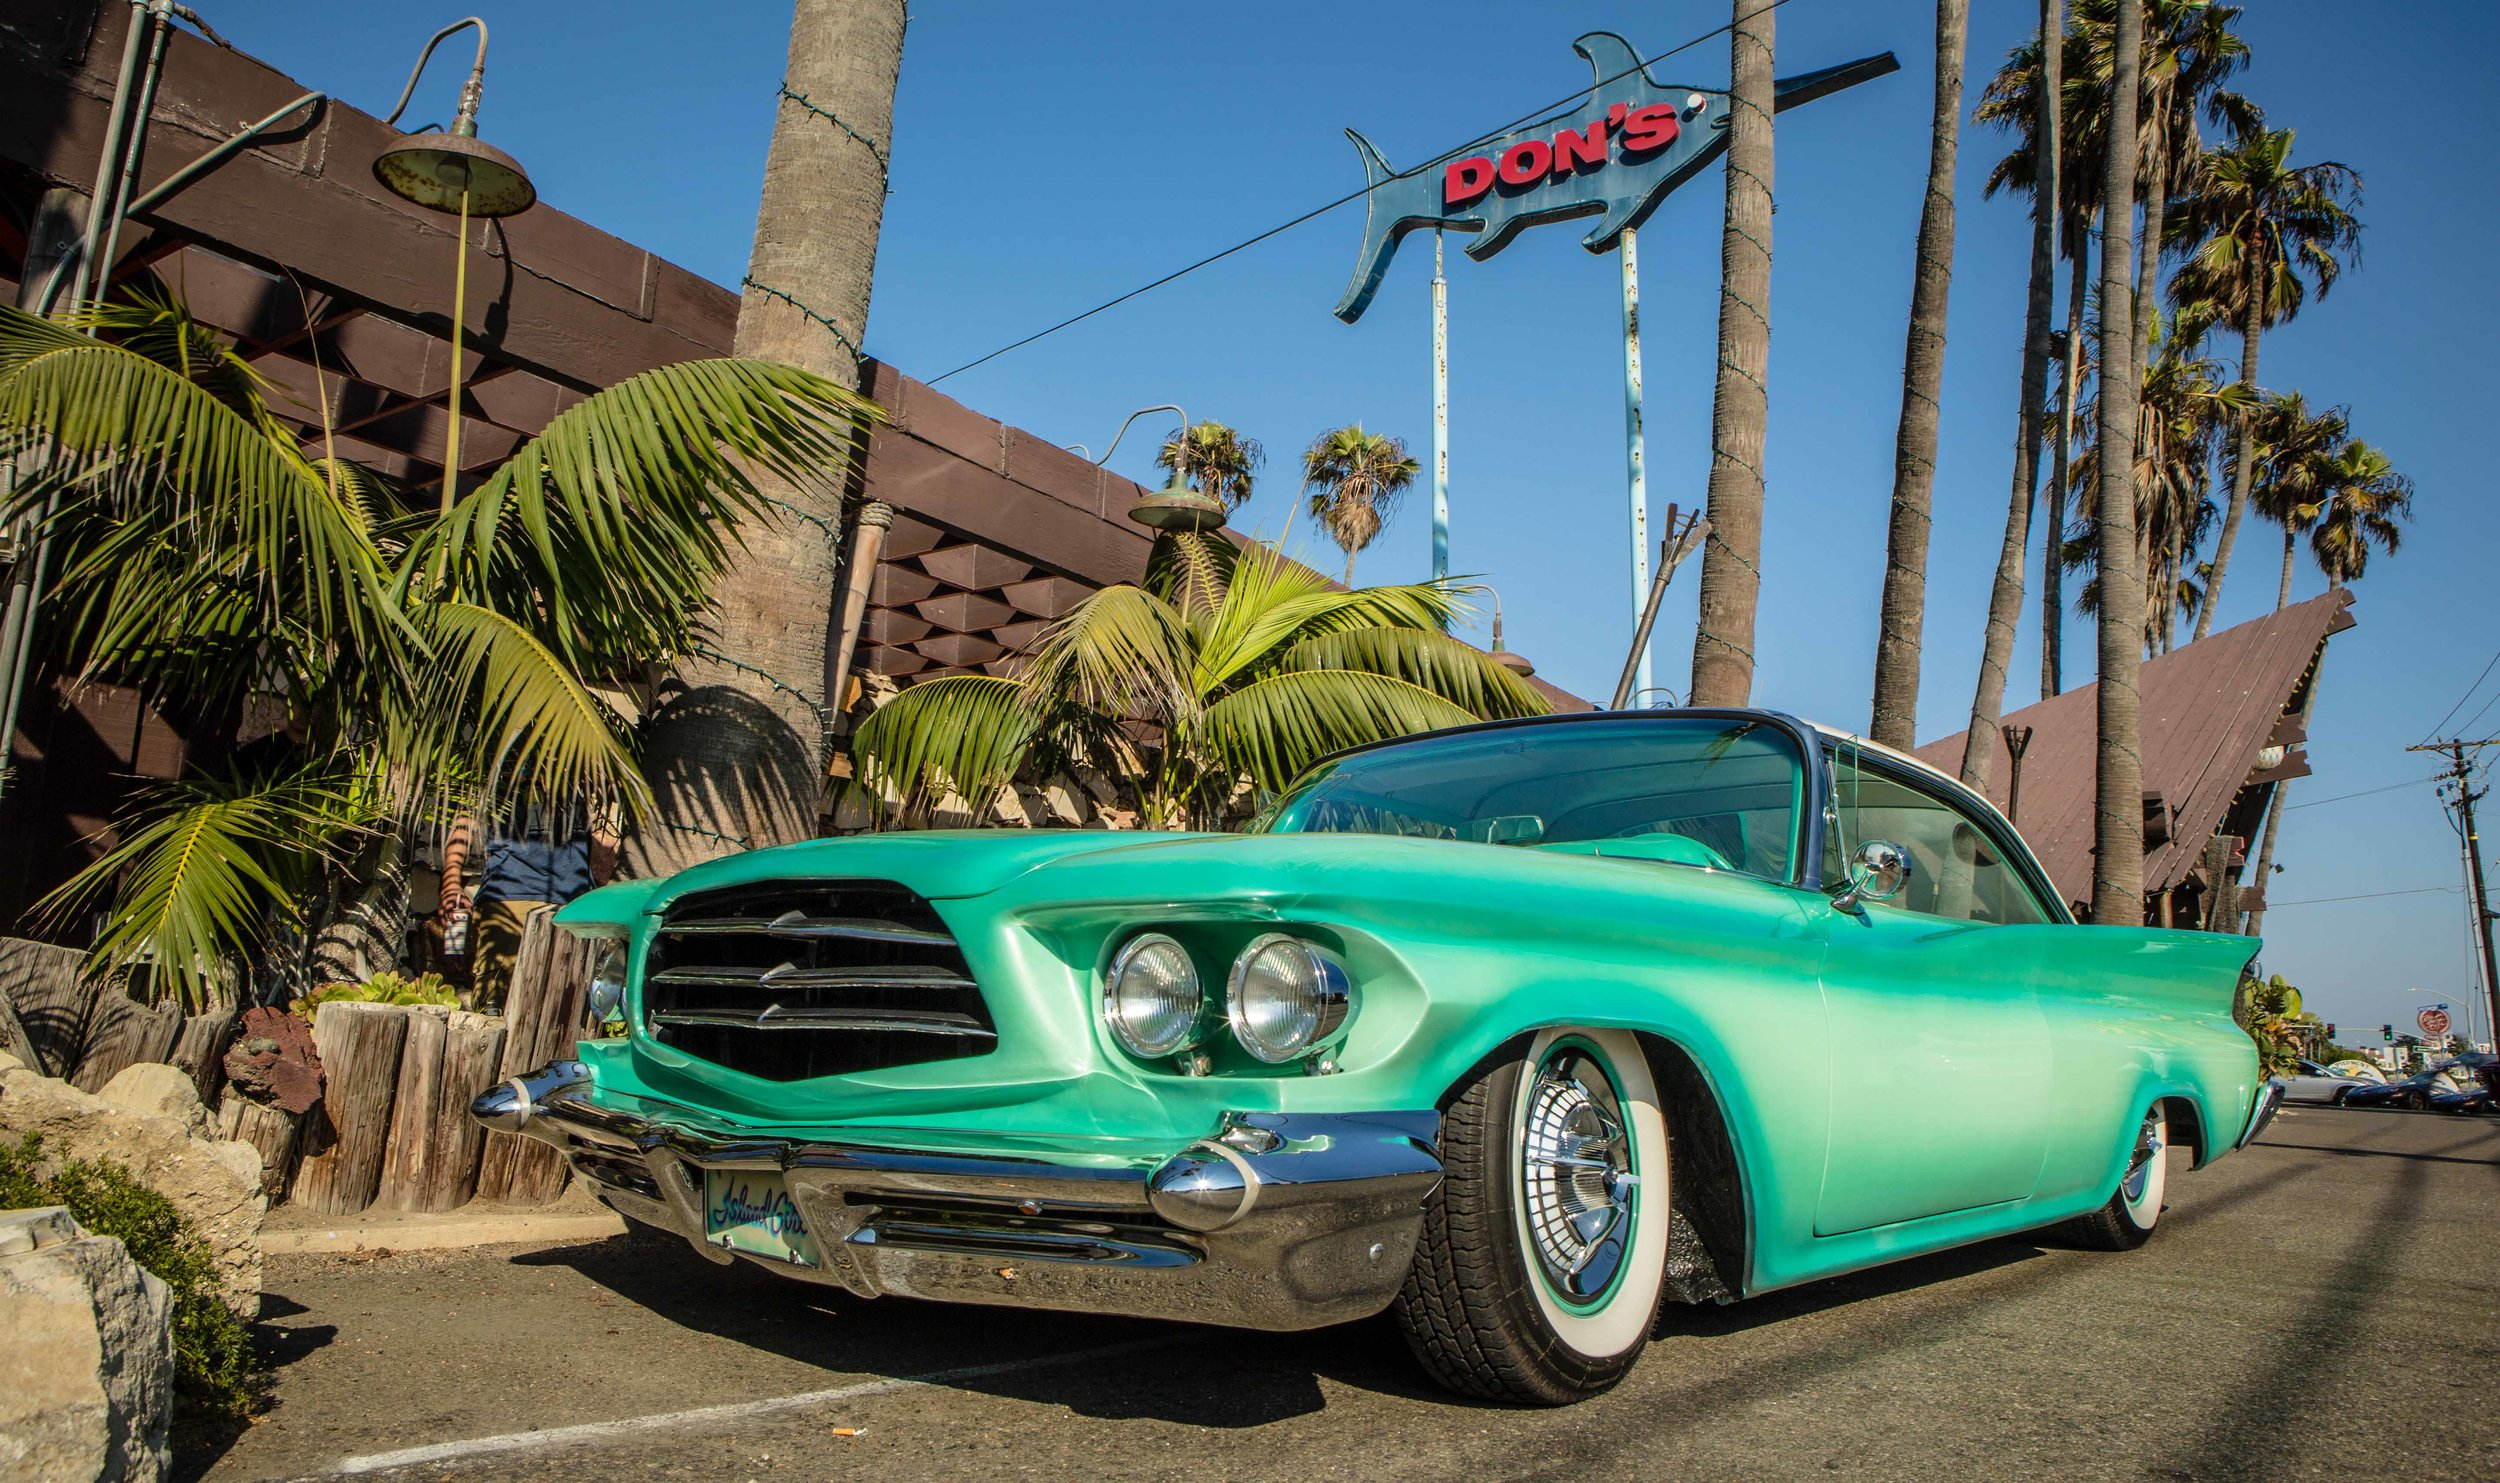 Anaheim Rod and Custom Island Girl 1960 De Soto (1 of 1)-10.jpg